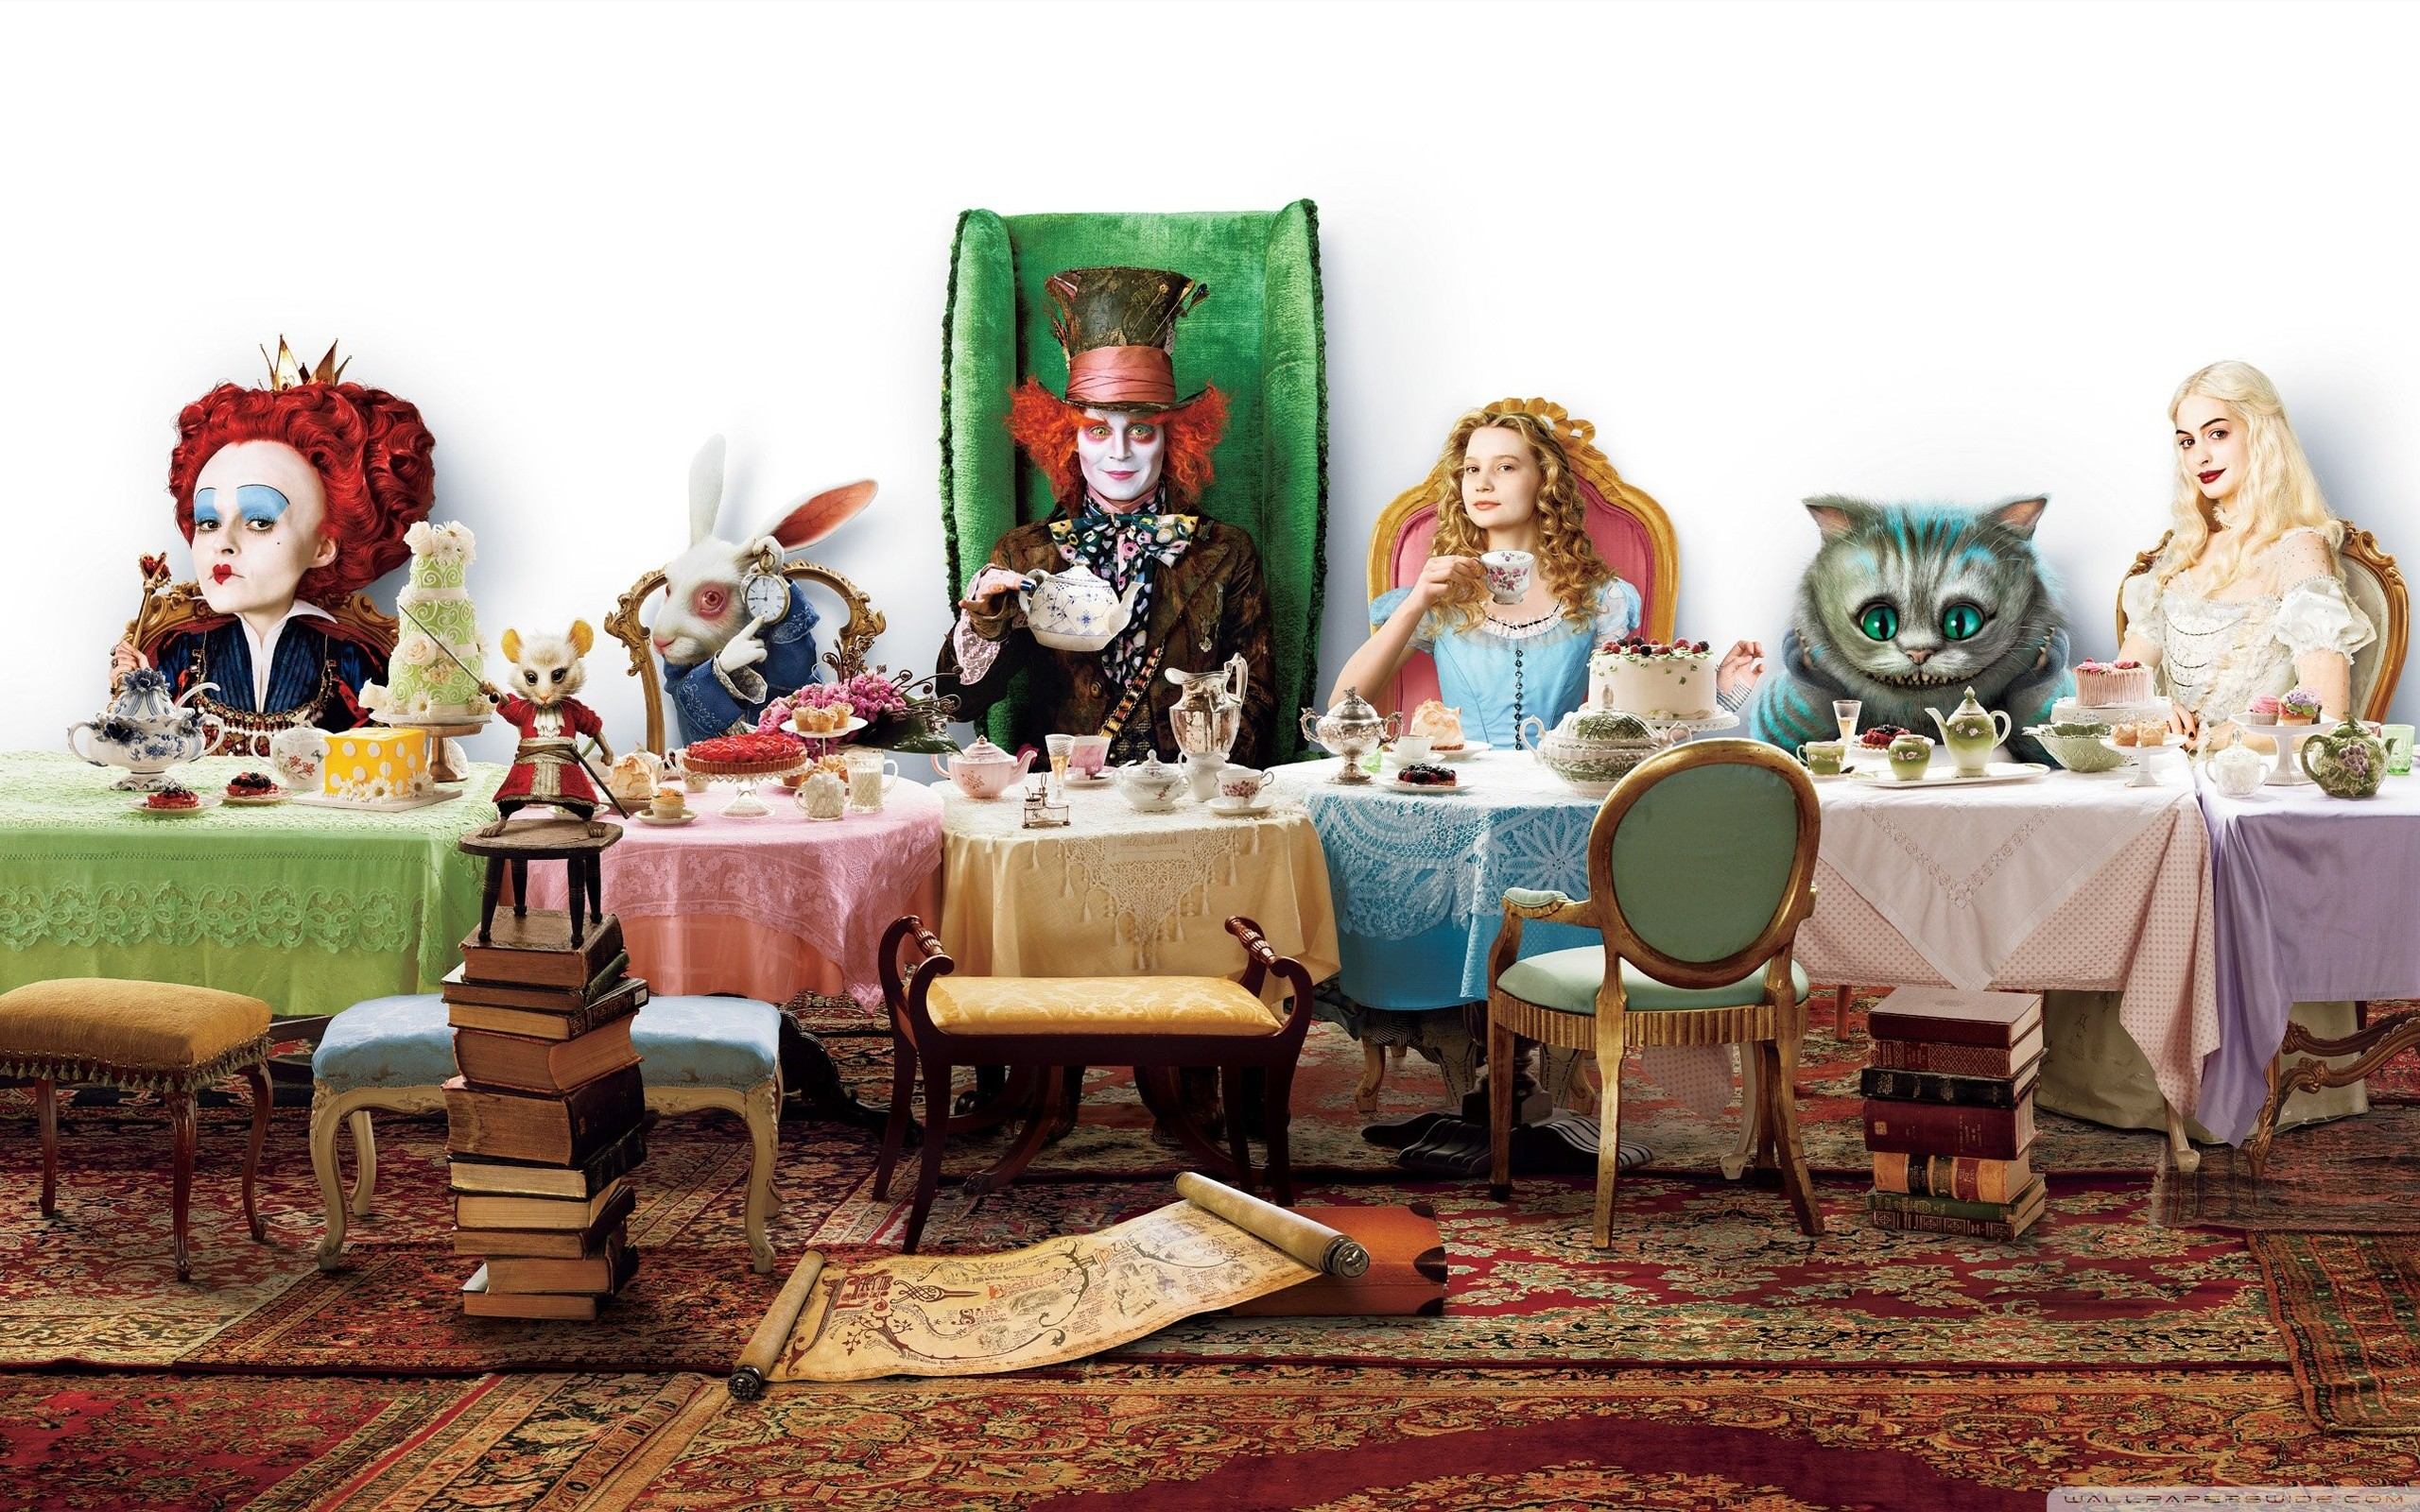 2560x1600 ... alice in wonderland hd desktop wallpaper widescreen high ...